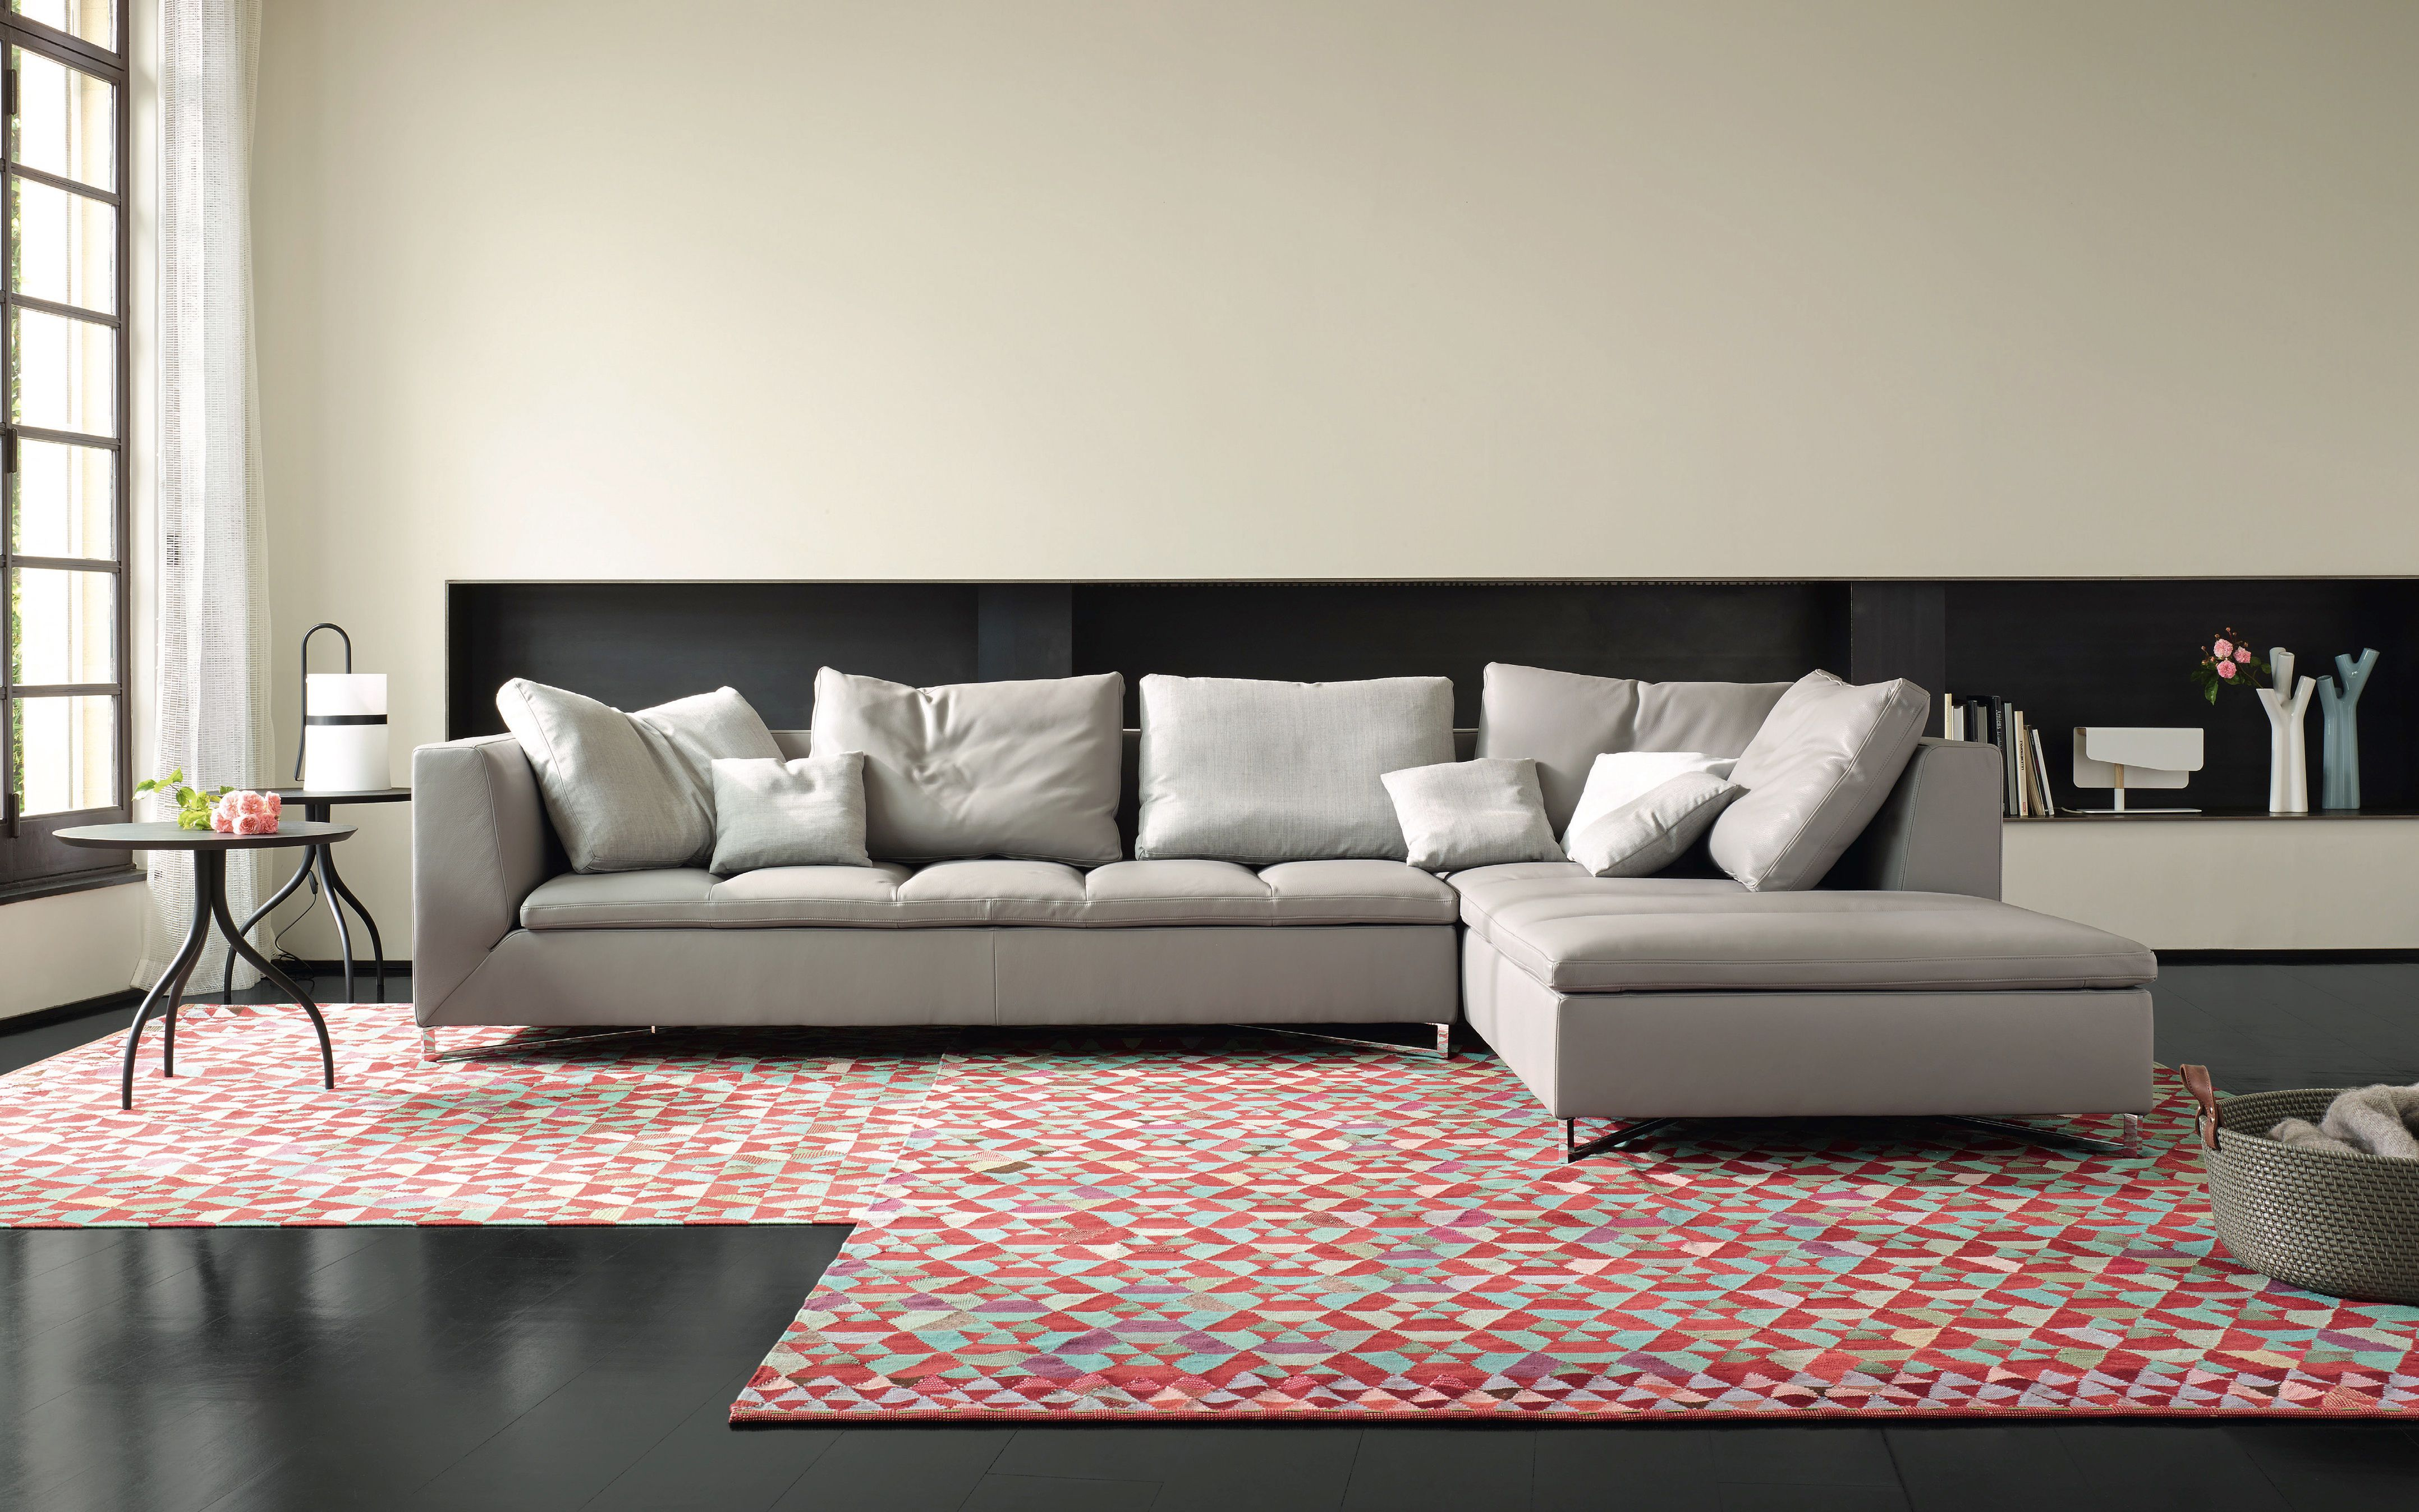 Feng Sofa Designed By Didier Gomez For Ligne Roset Available At Linea Inc Modern Furniture Los Angeles Info Modern Furniture Stores Furniture Ligne Roset